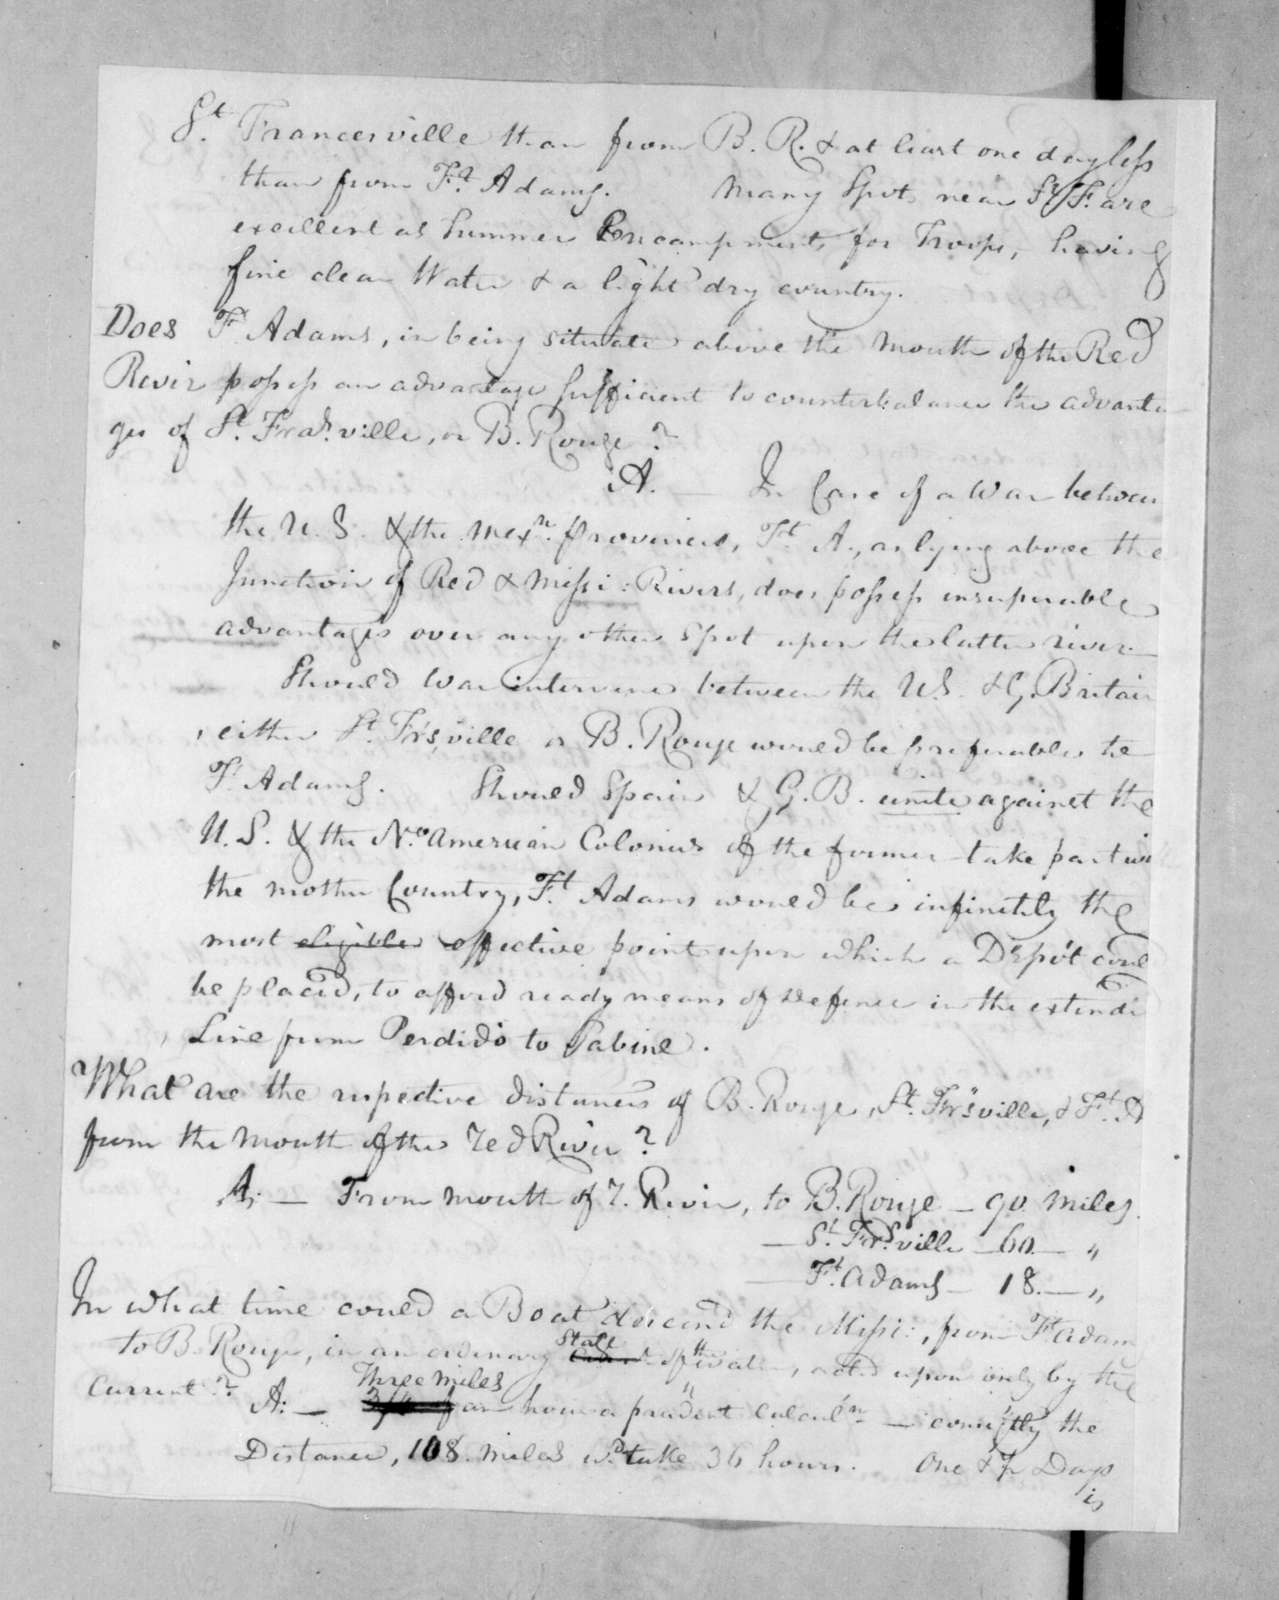 George Bomford to Andrew Jackson, July 30, 1816